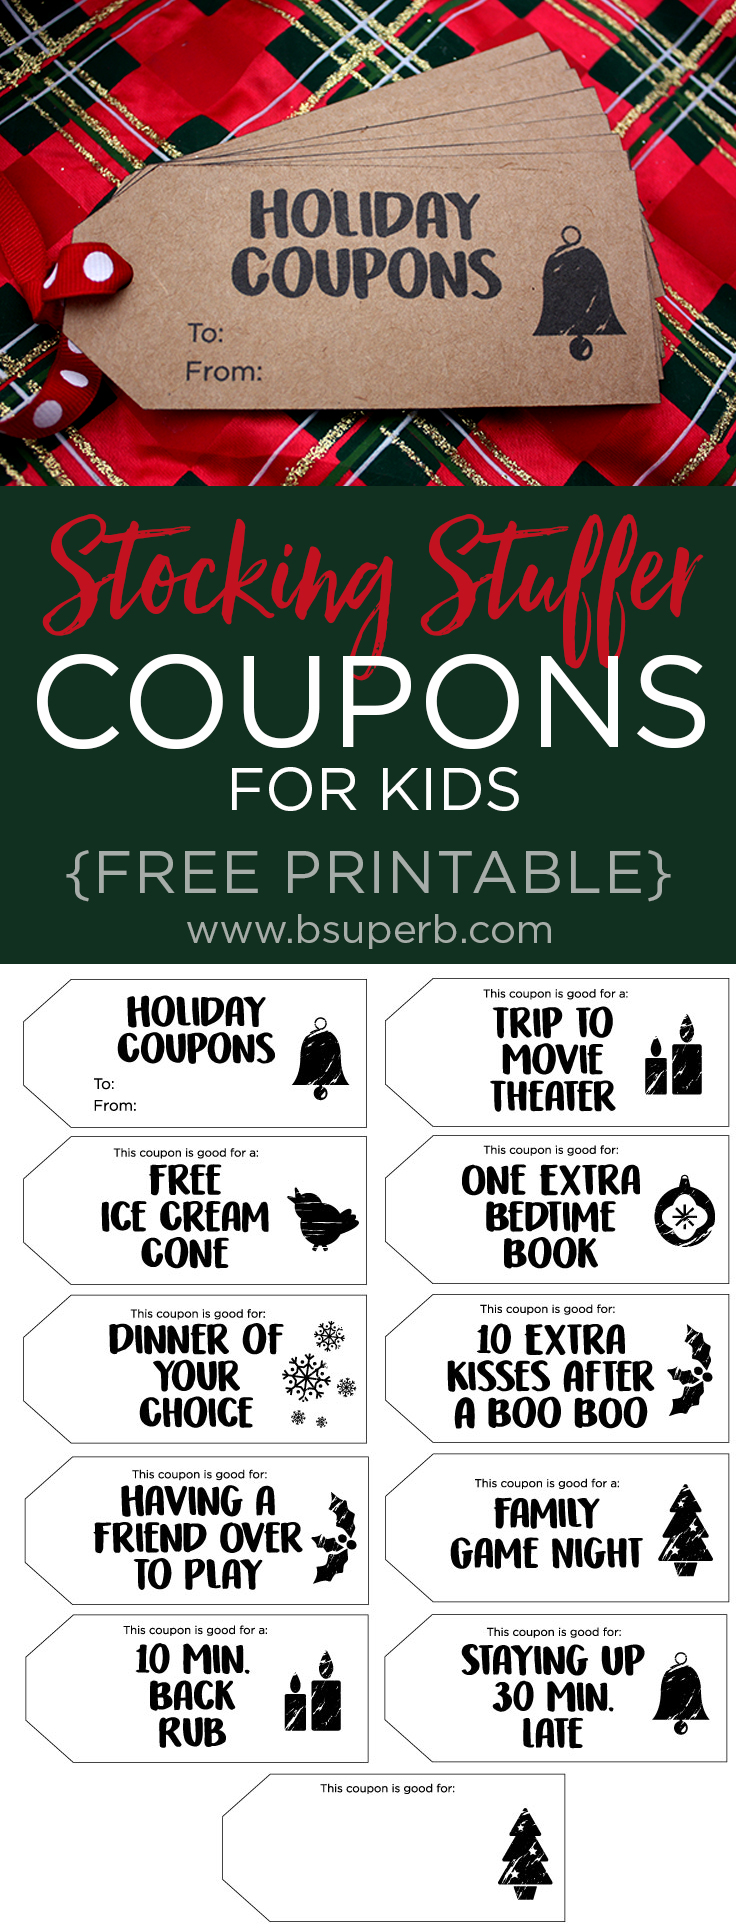 stocking stuffer holiday coupons for kids free printable stockedwithlove collectivebias shop